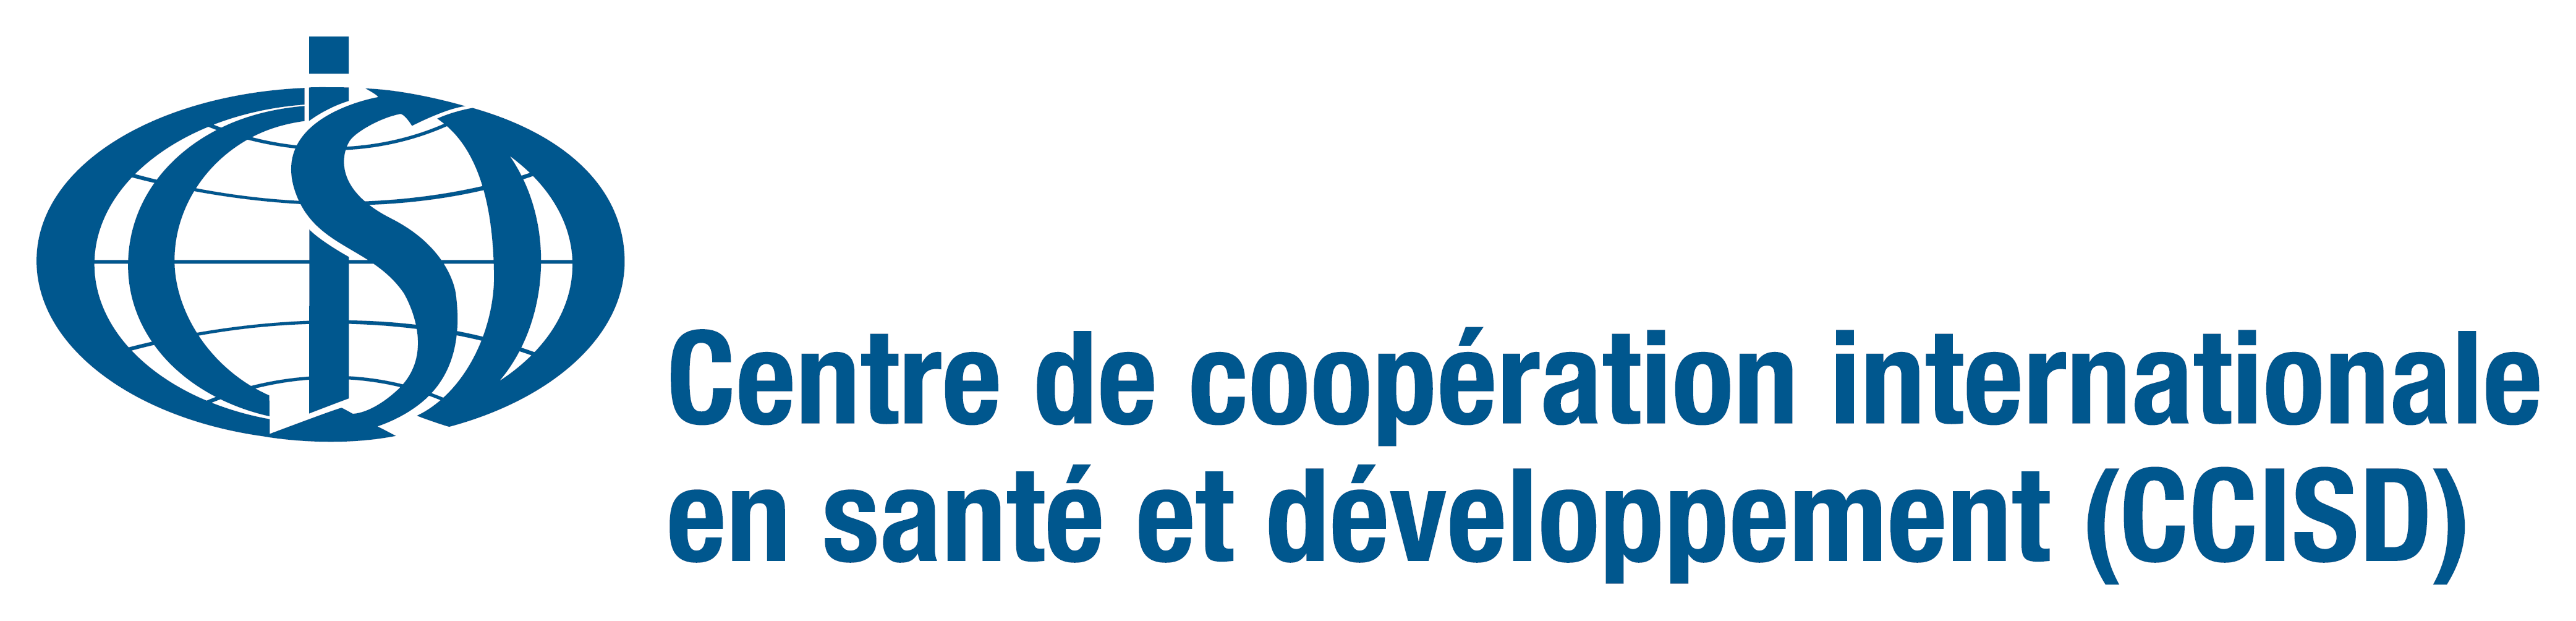 Centre de cooperation internationale en sante et developpement (CCISD) - Logo